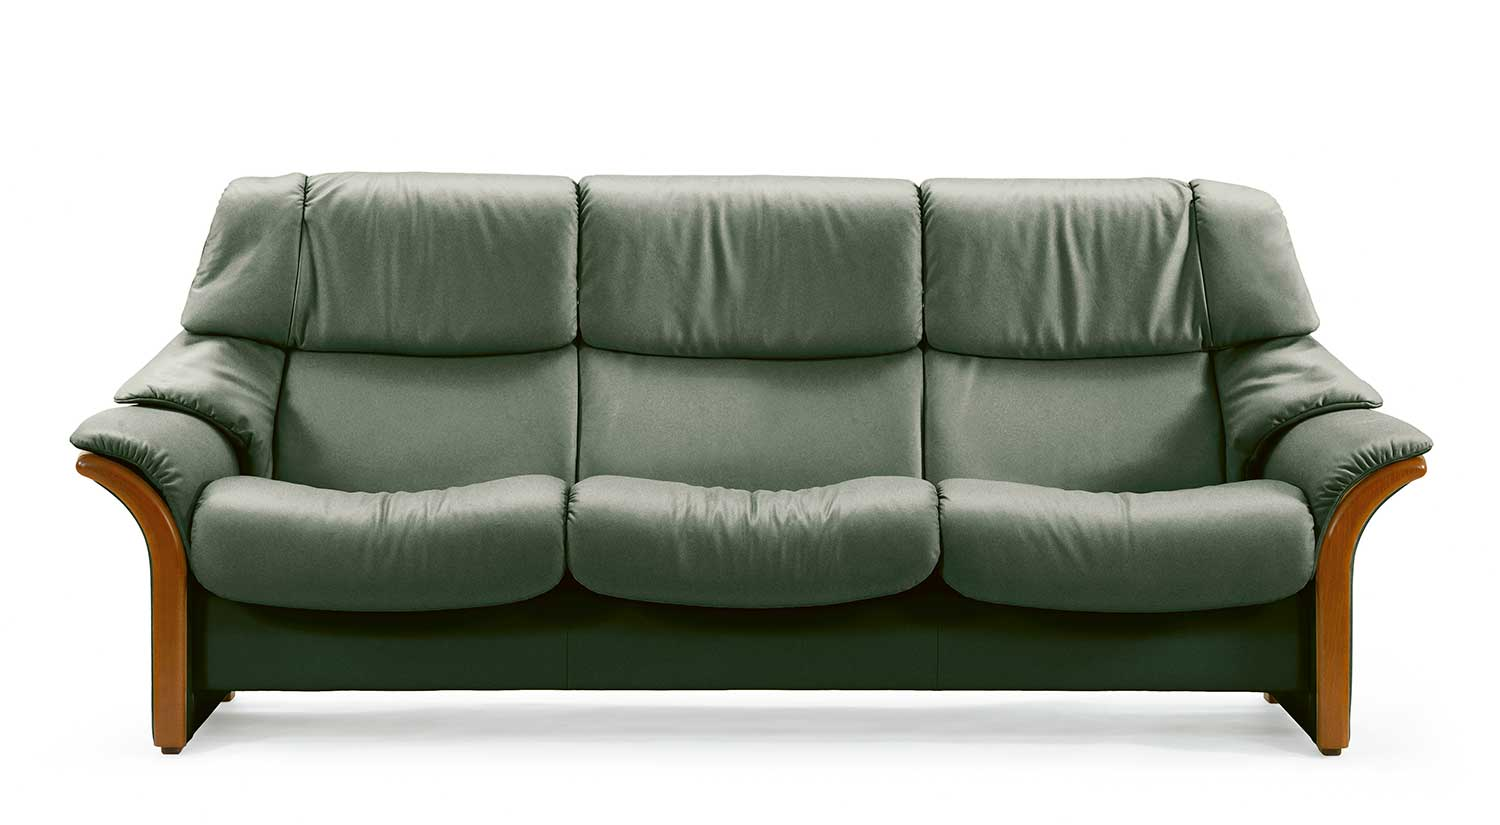 Ekornes sofas ekornes stressless paradise high back sofa thesofa Couches and loveseats